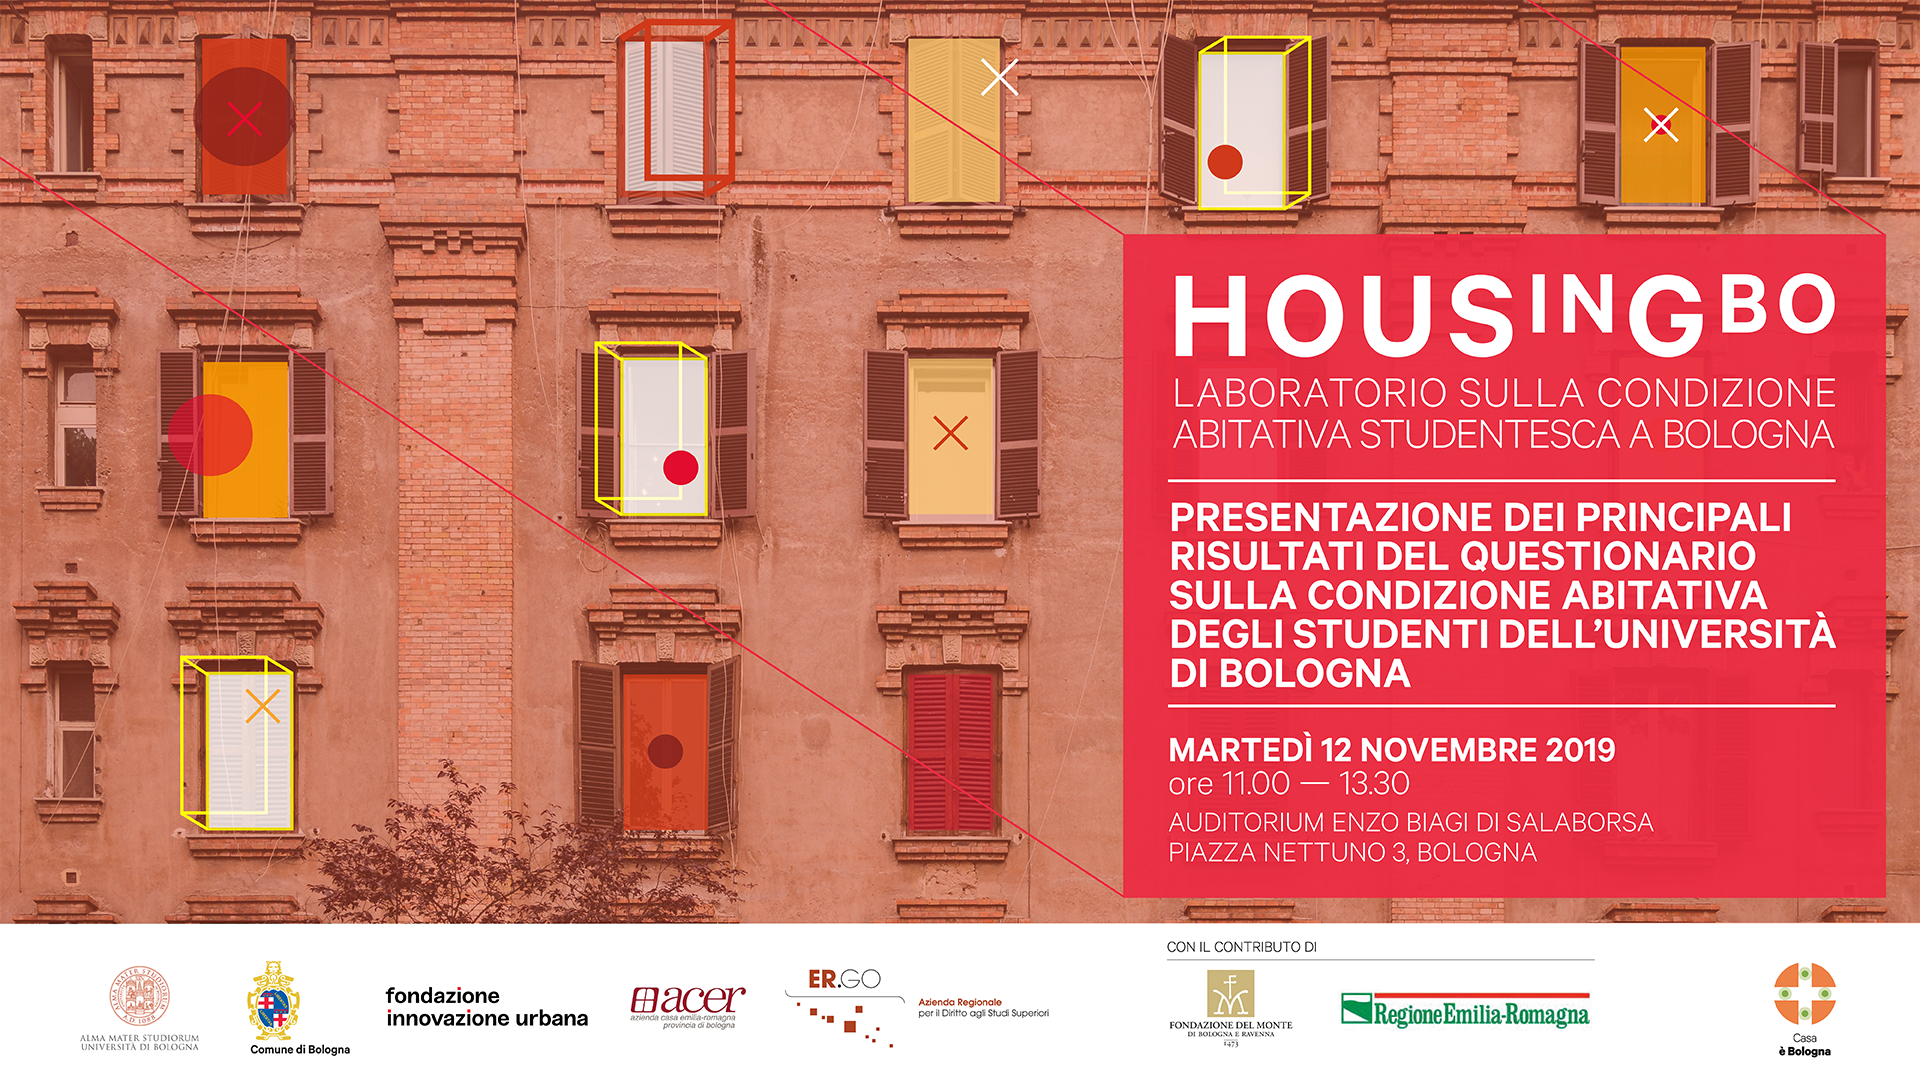 2019 11 12 HousingBo eventoFB invito Auditorium